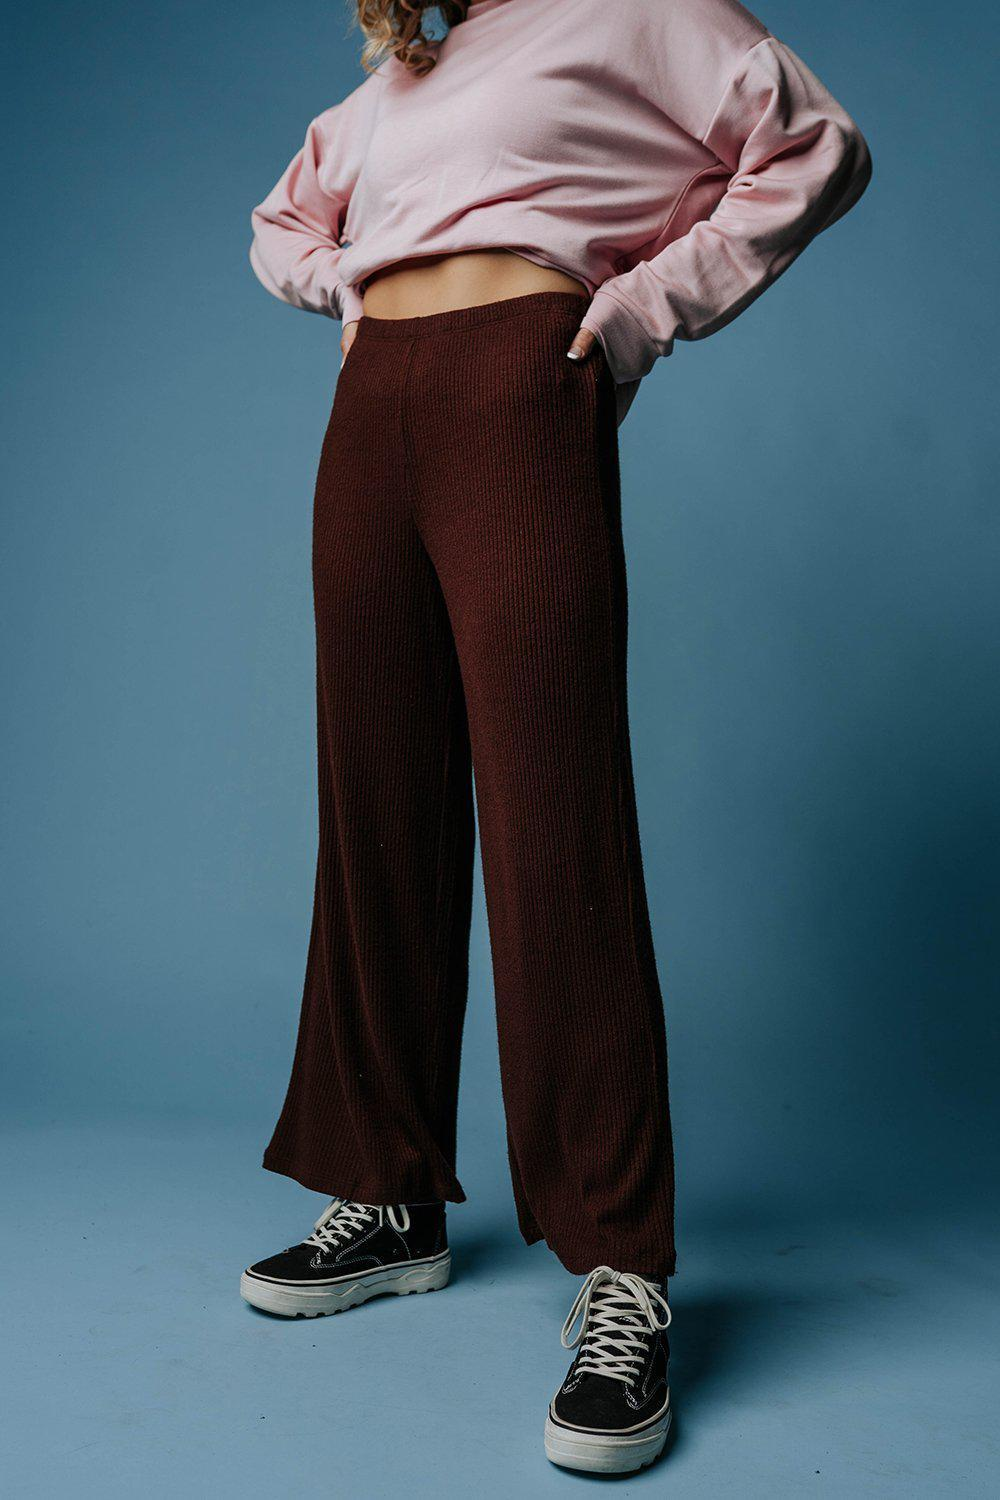 best_seller, Good to Me Wide Leg Pants, Bottom, women's clothing, dresses, skirts, coats, jackets, shoes, boots, tops, tee shirts, jeans, free people, levi's, rollas, jumpsuits, bottoms, tops, sweaters, pullovers, pants, shorts, sweats,.